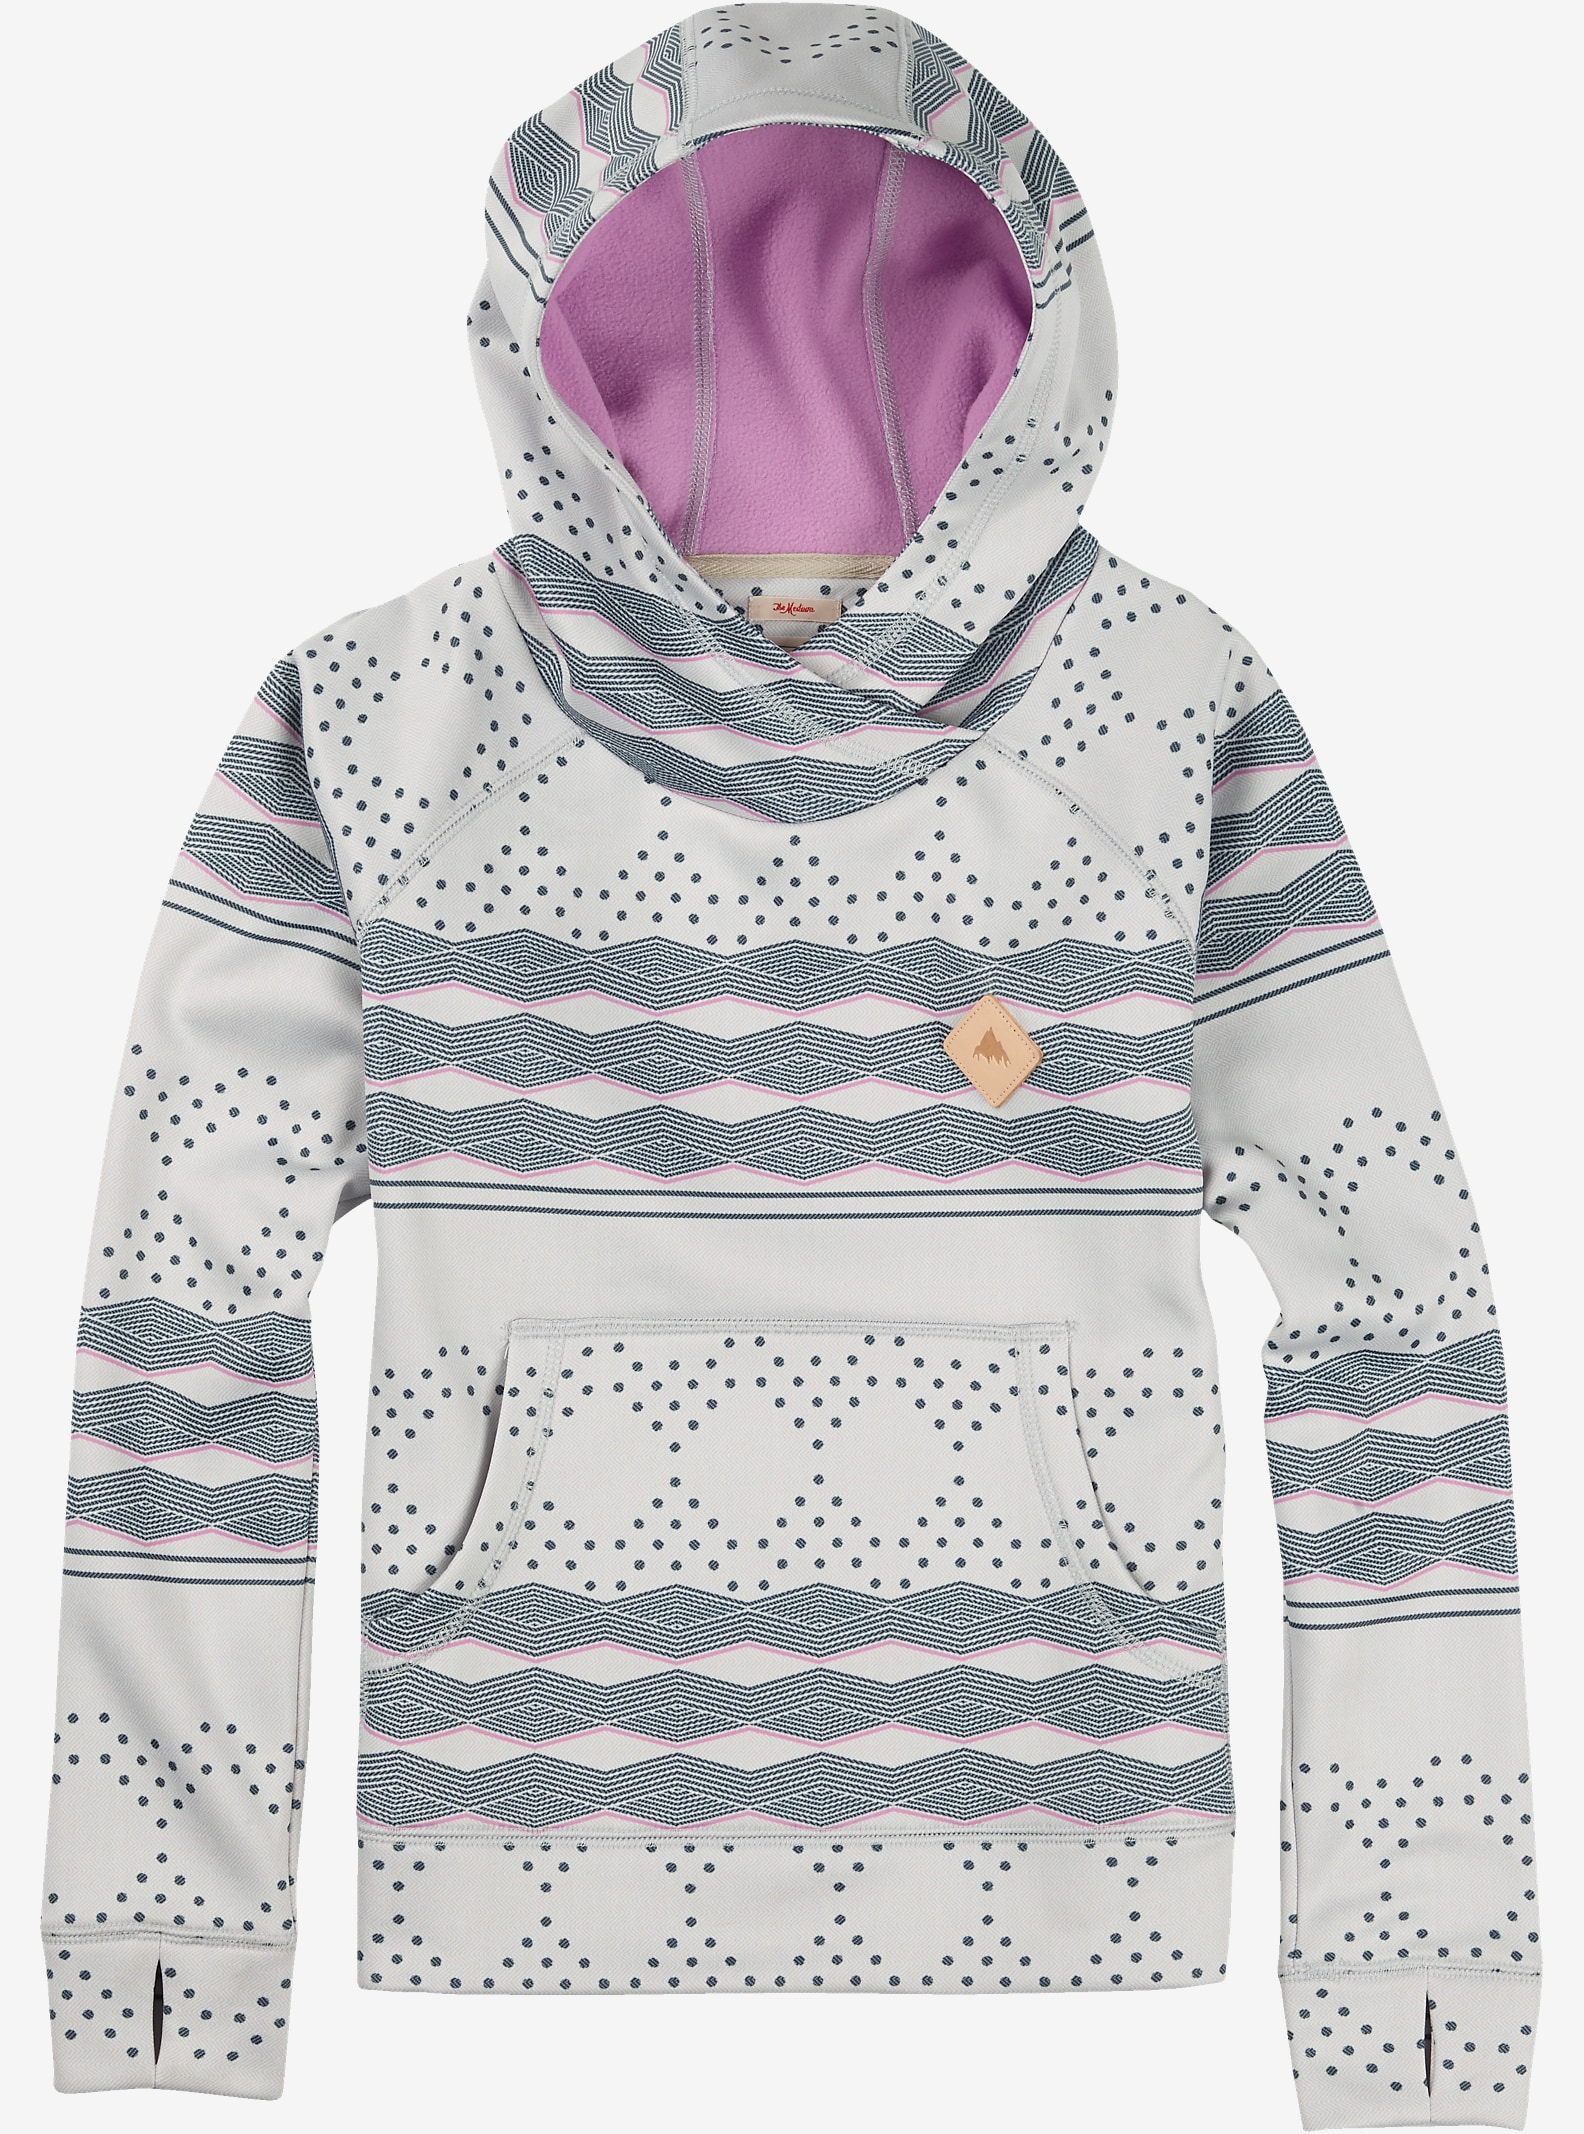 Burton Girls' Heron Pullover Hoodie shown in Ethnic Herringbone Stripe